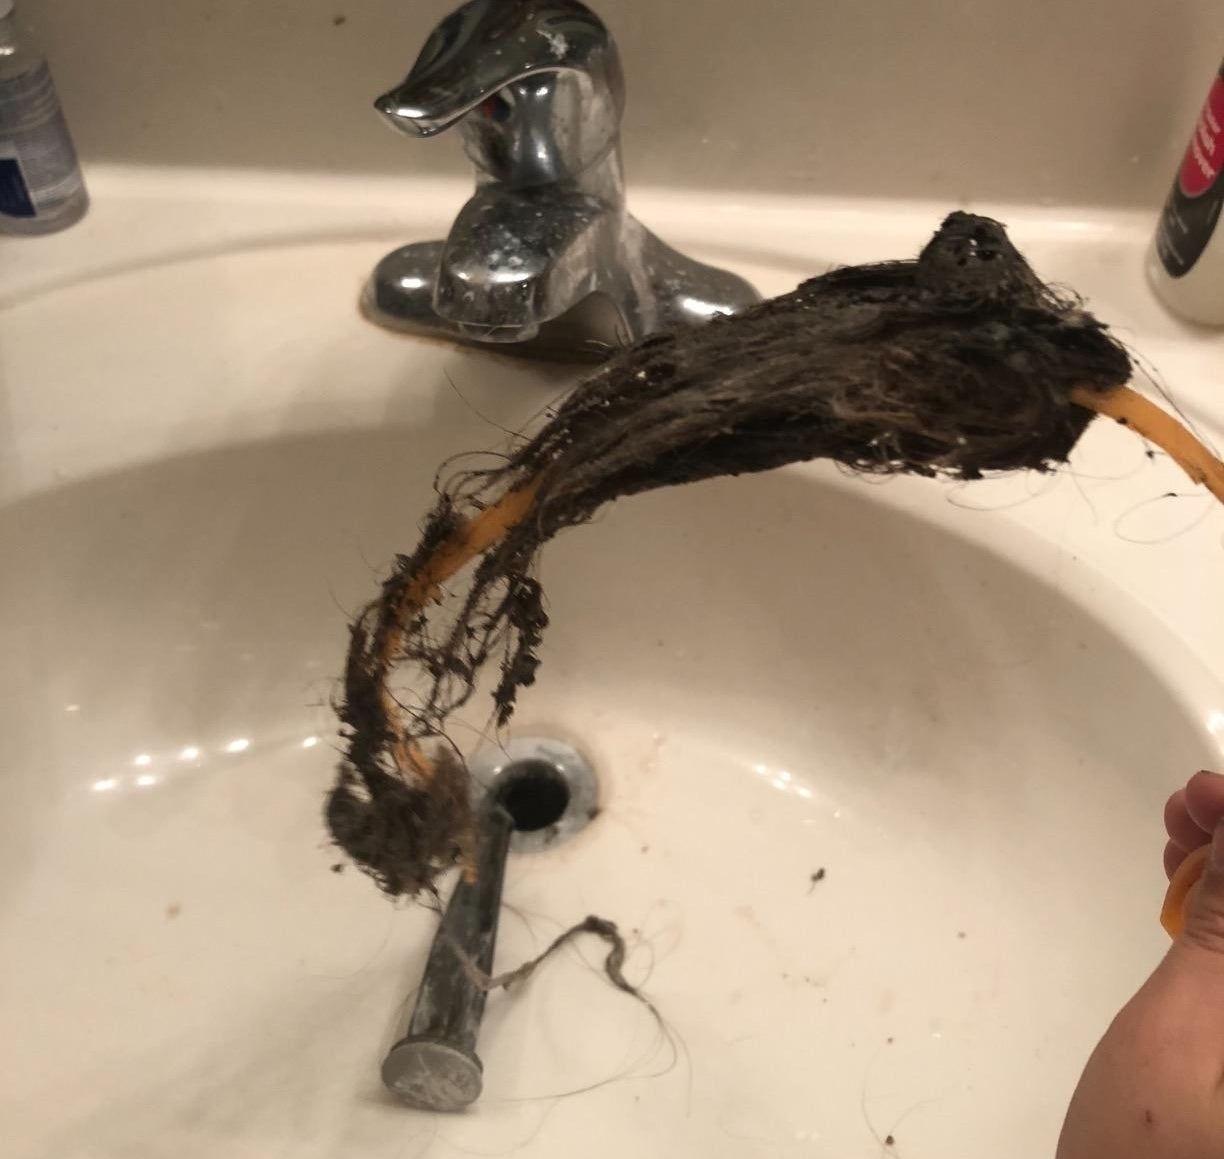 Reviewer photo showing a large clump of hair pulled out from the sink drain